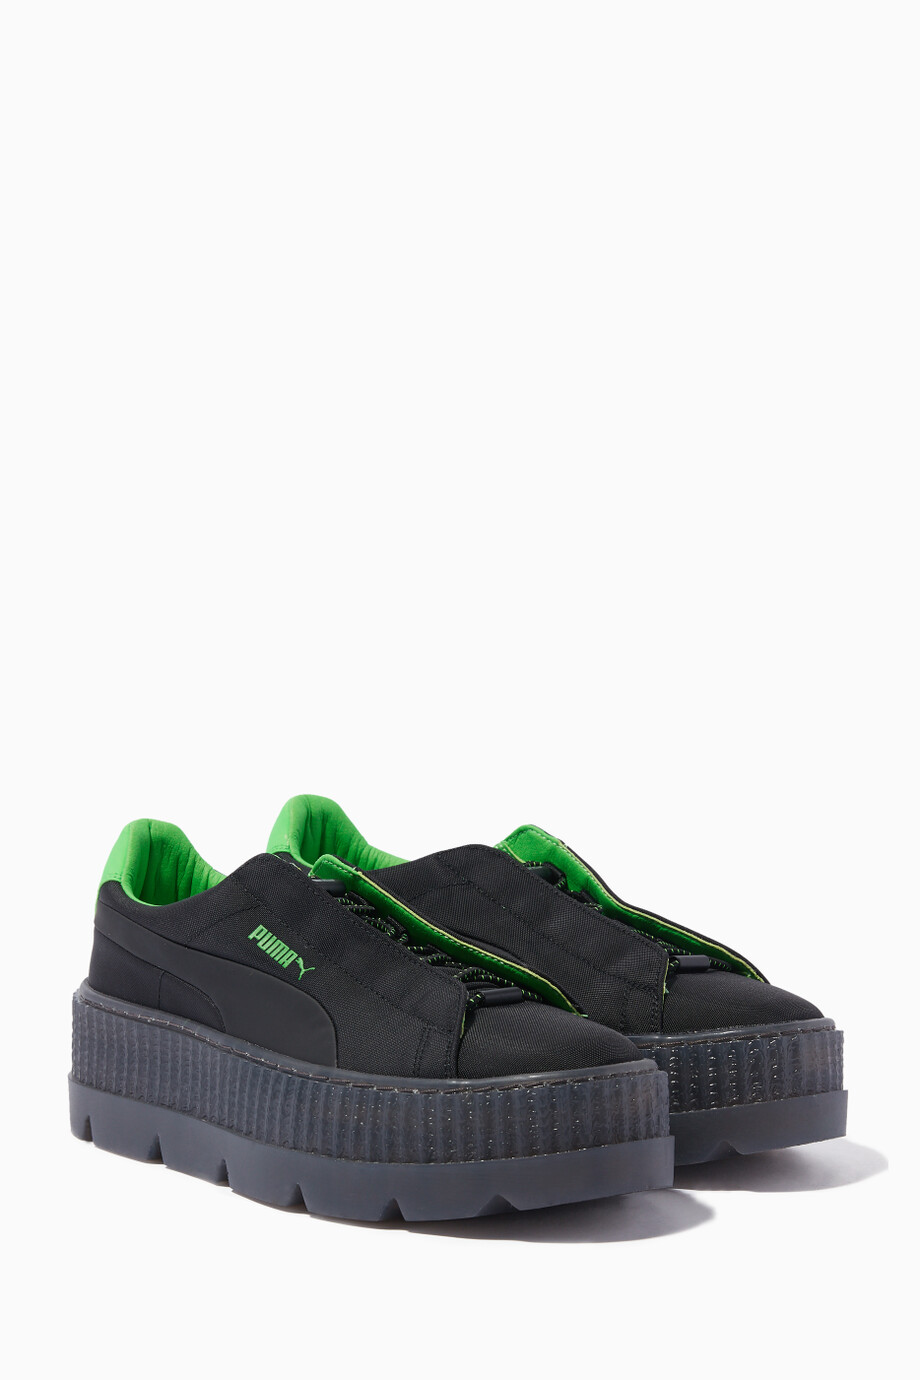 the best attitude c830b a8246 Shop Puma x Rihanna Black Black Cleated Creeper Surf ...